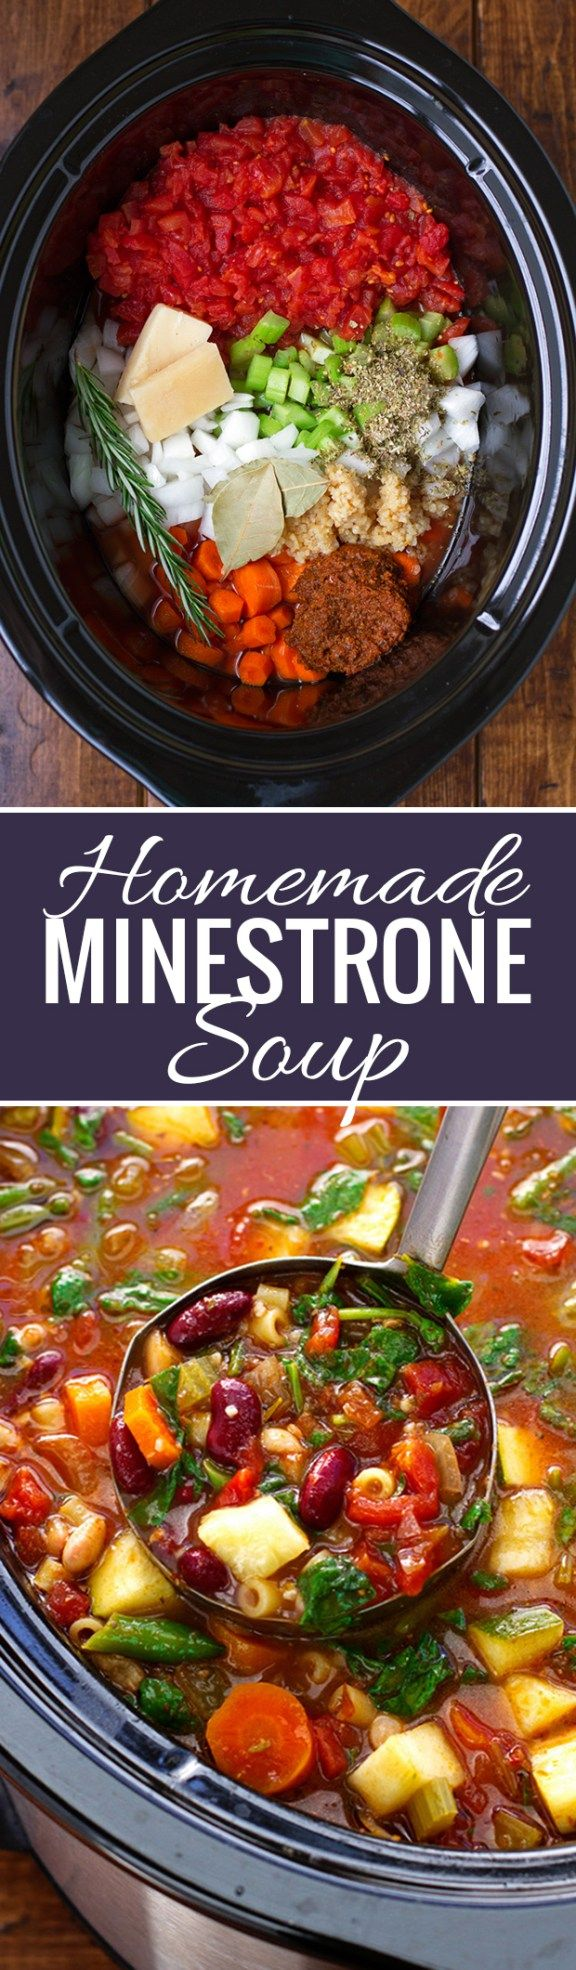 Homemade Minestrone Soup {Slow Cooker} made with a secret ingredient, this soup is perfect for chilly nights.